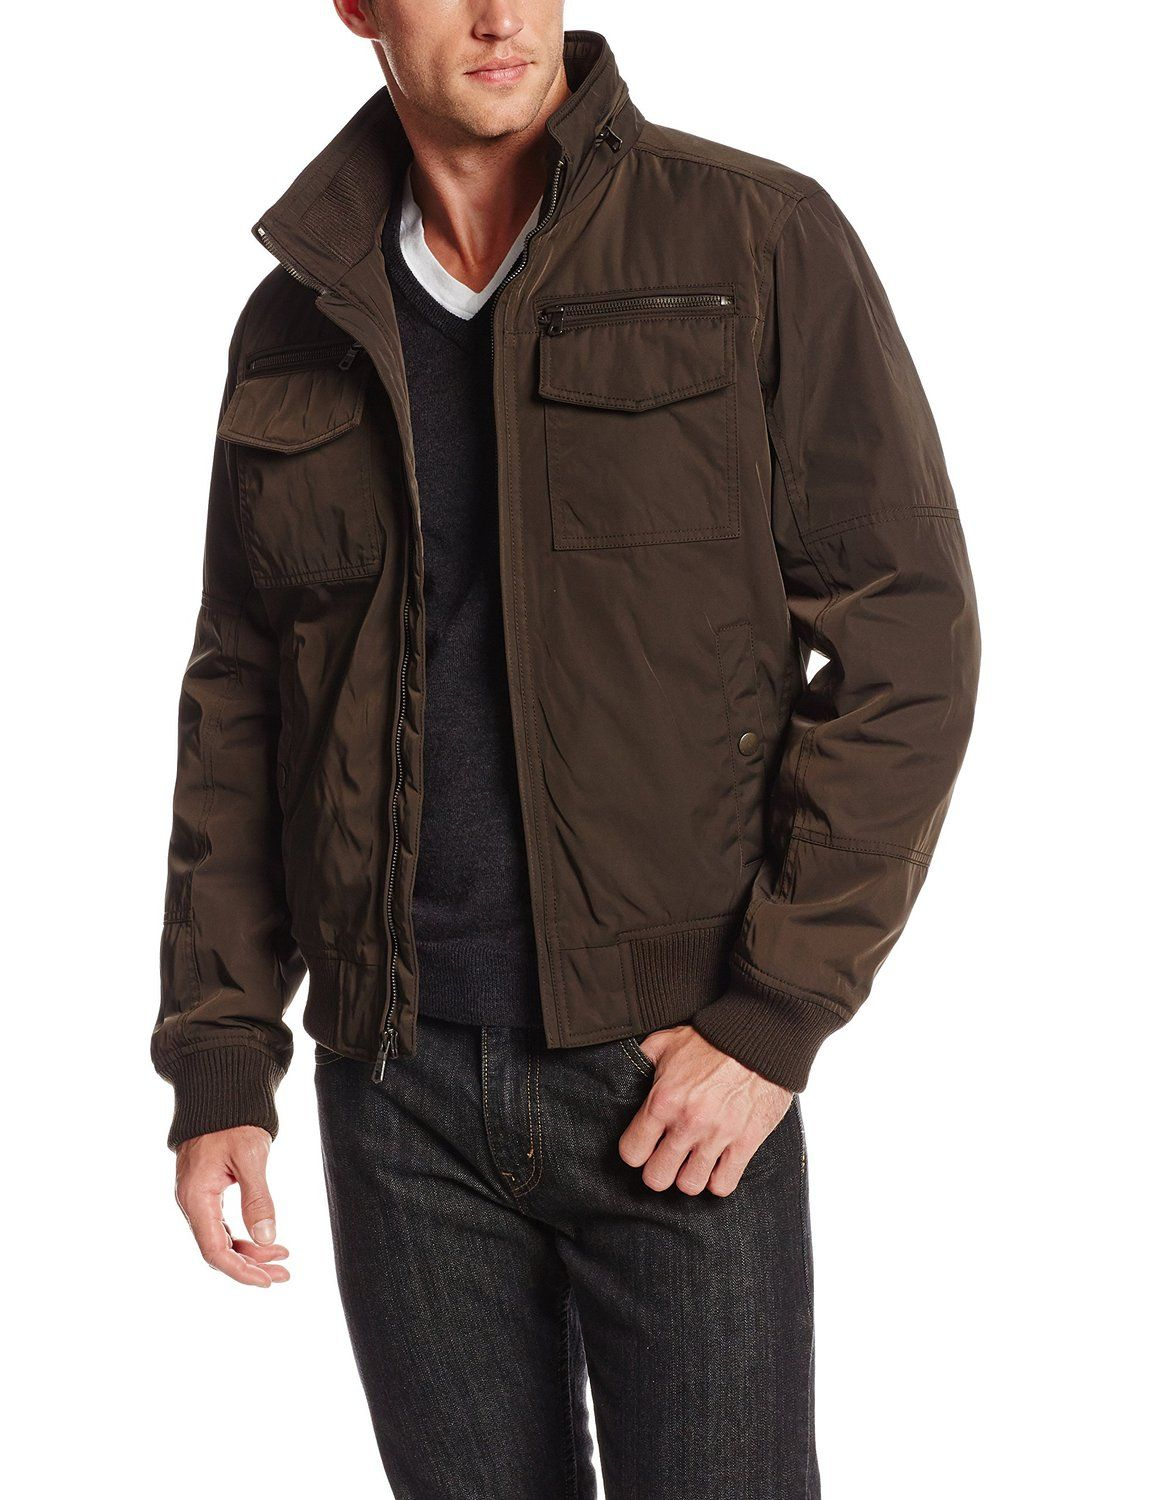 41255bfd8 $78.99 - Tommy Hilfiger Men's Poly-Twill Performance Bomber Jacket ...